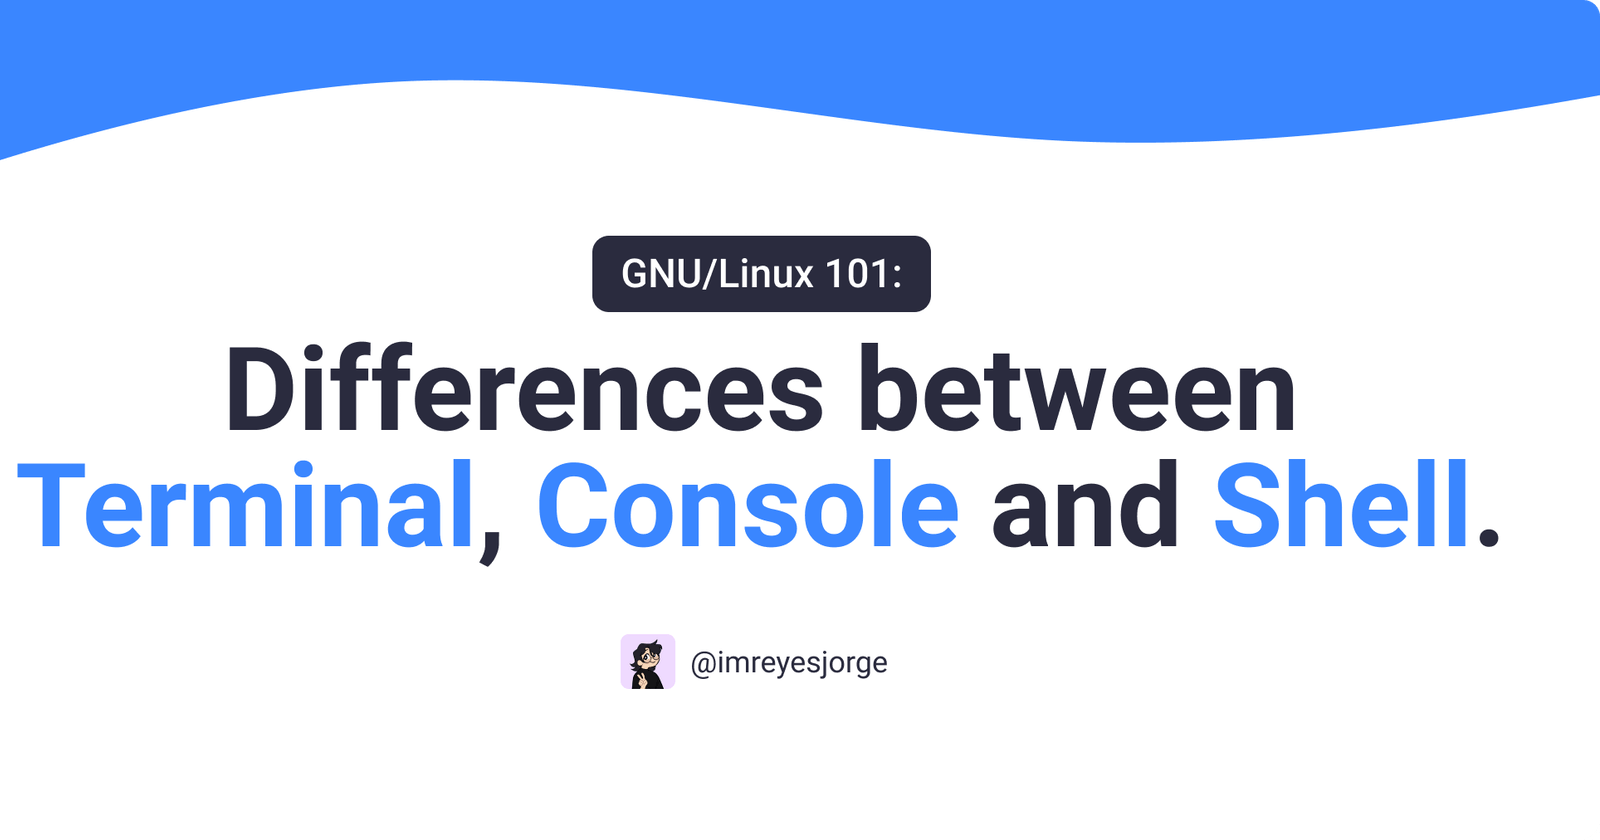 GNU/Linux 101: Differences between Terminal, Console and Shell